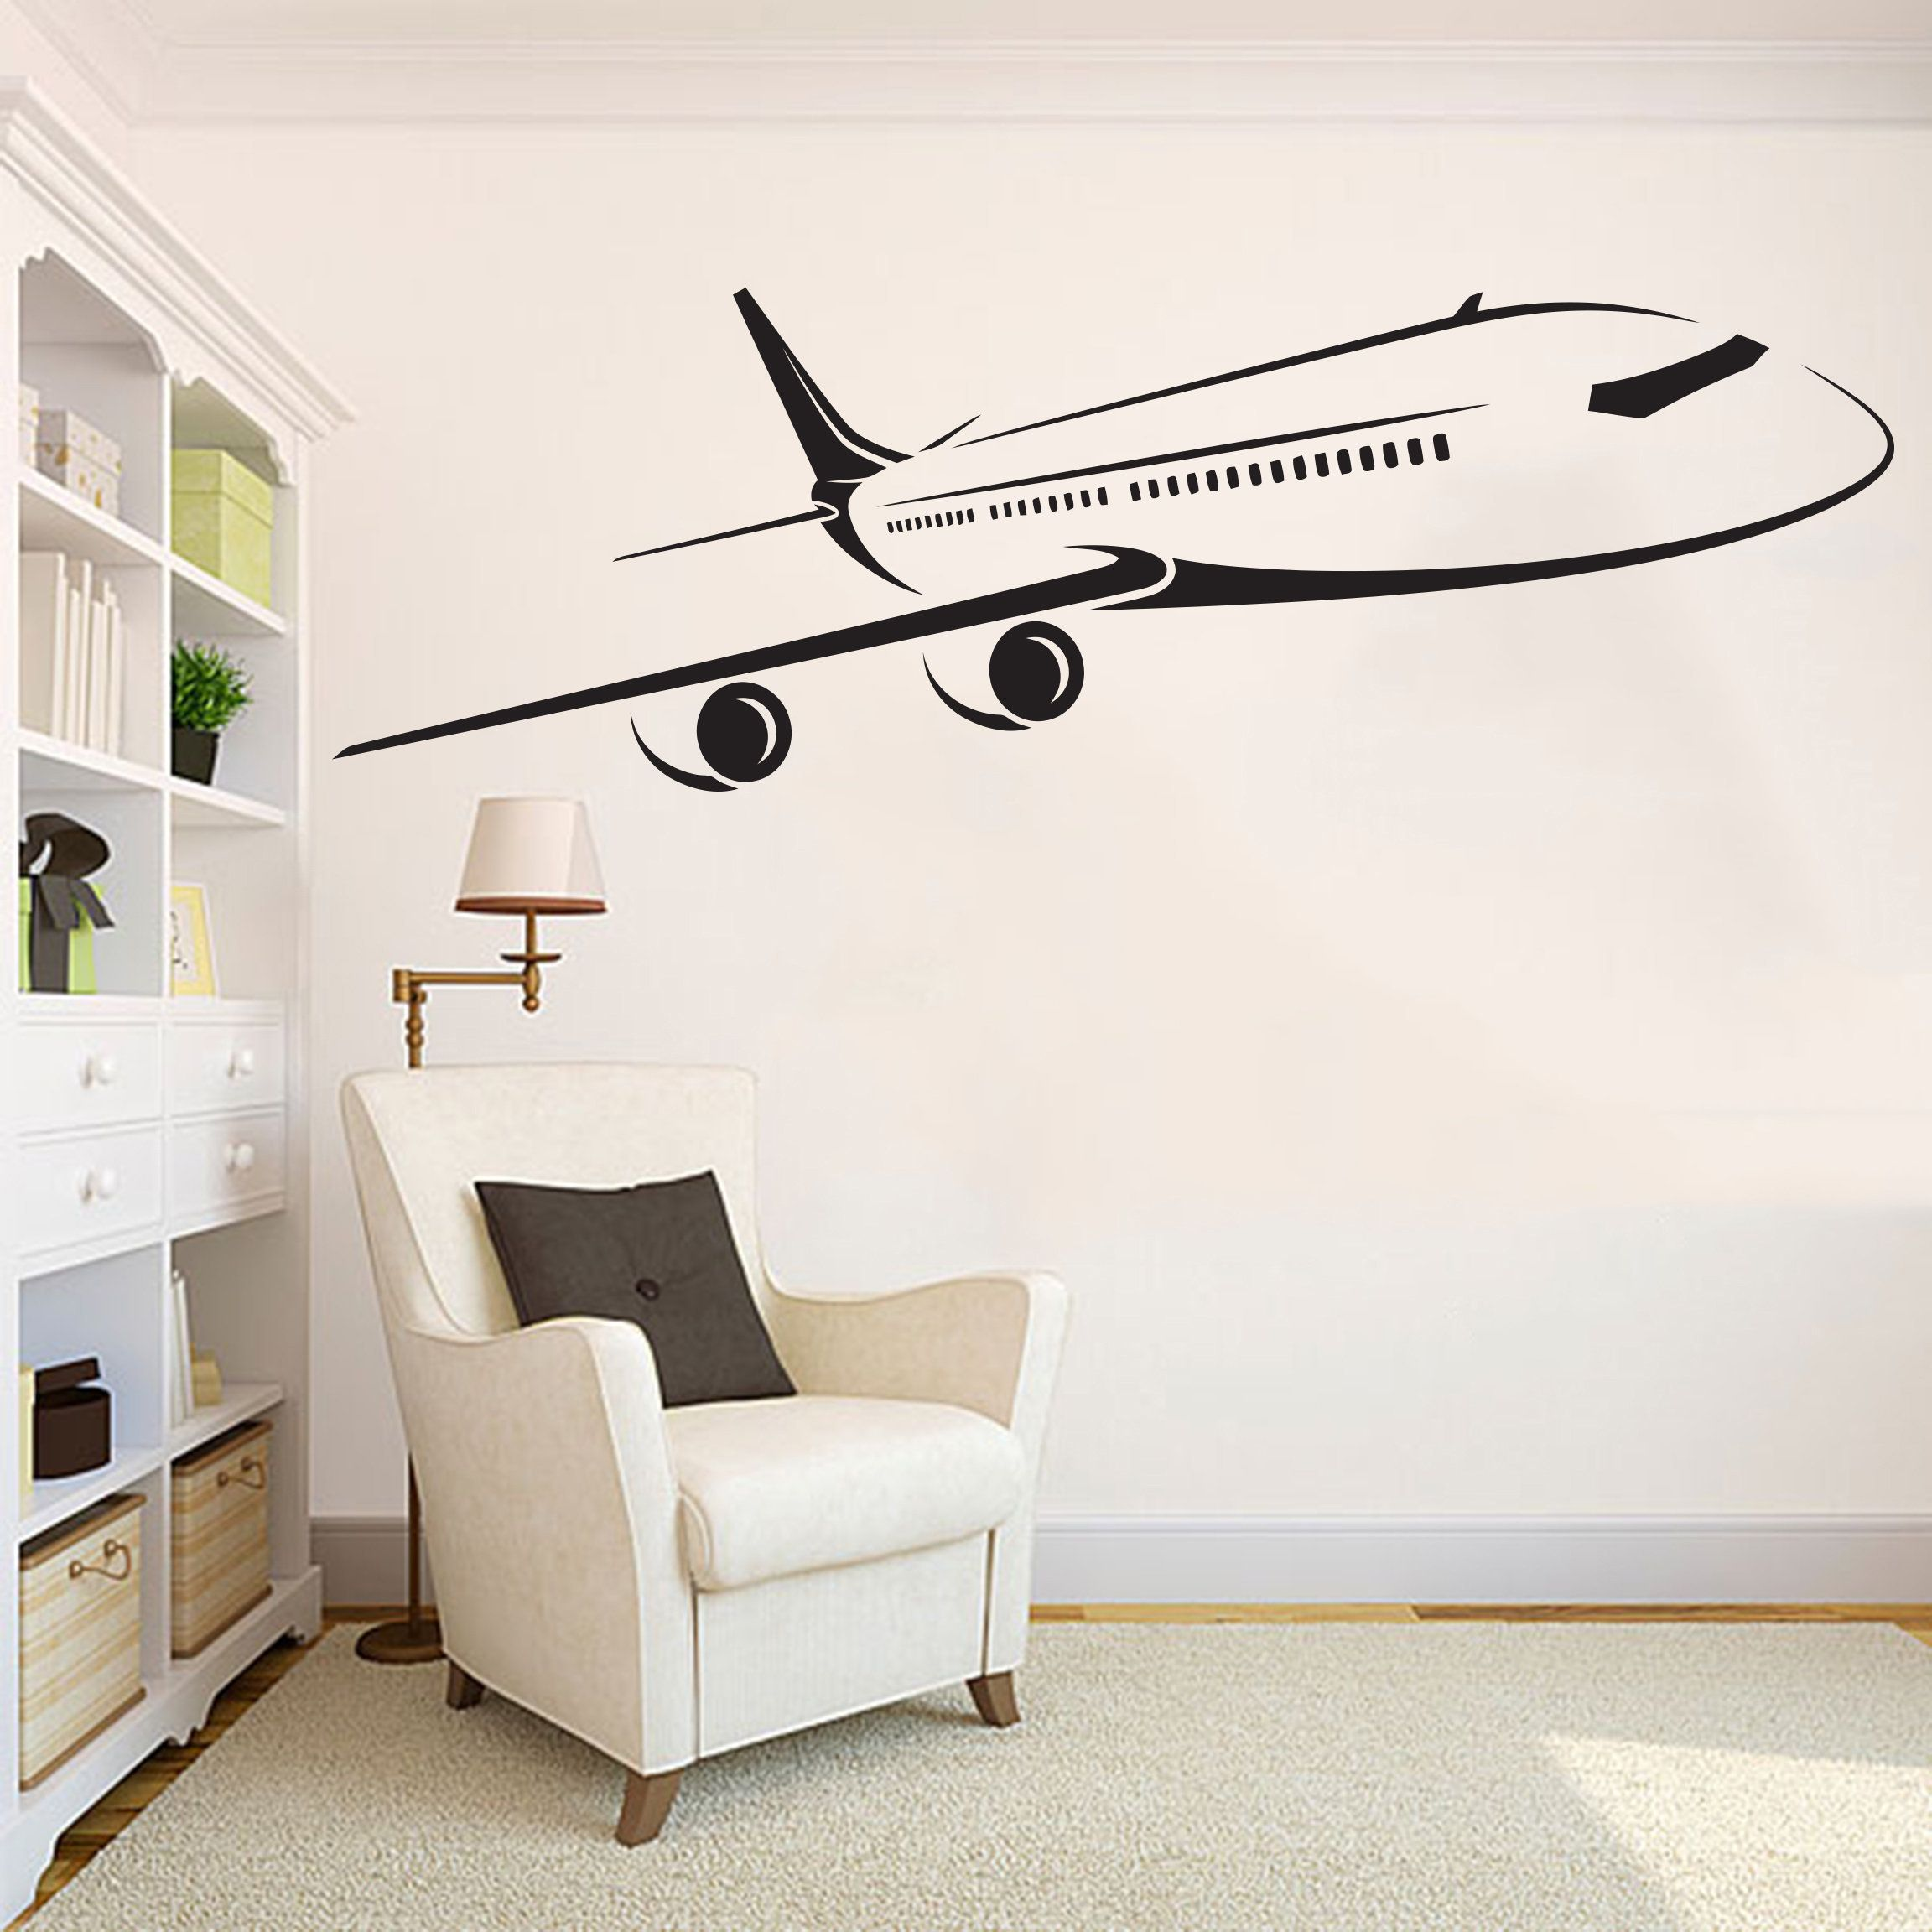 Airplane Wall Decal Airplane Decor Airplane Sticker Etsy Nursery Wall Decals Aviation Room Decor Airplanes Wall Decals [ 2304 x 2304 Pixel ]